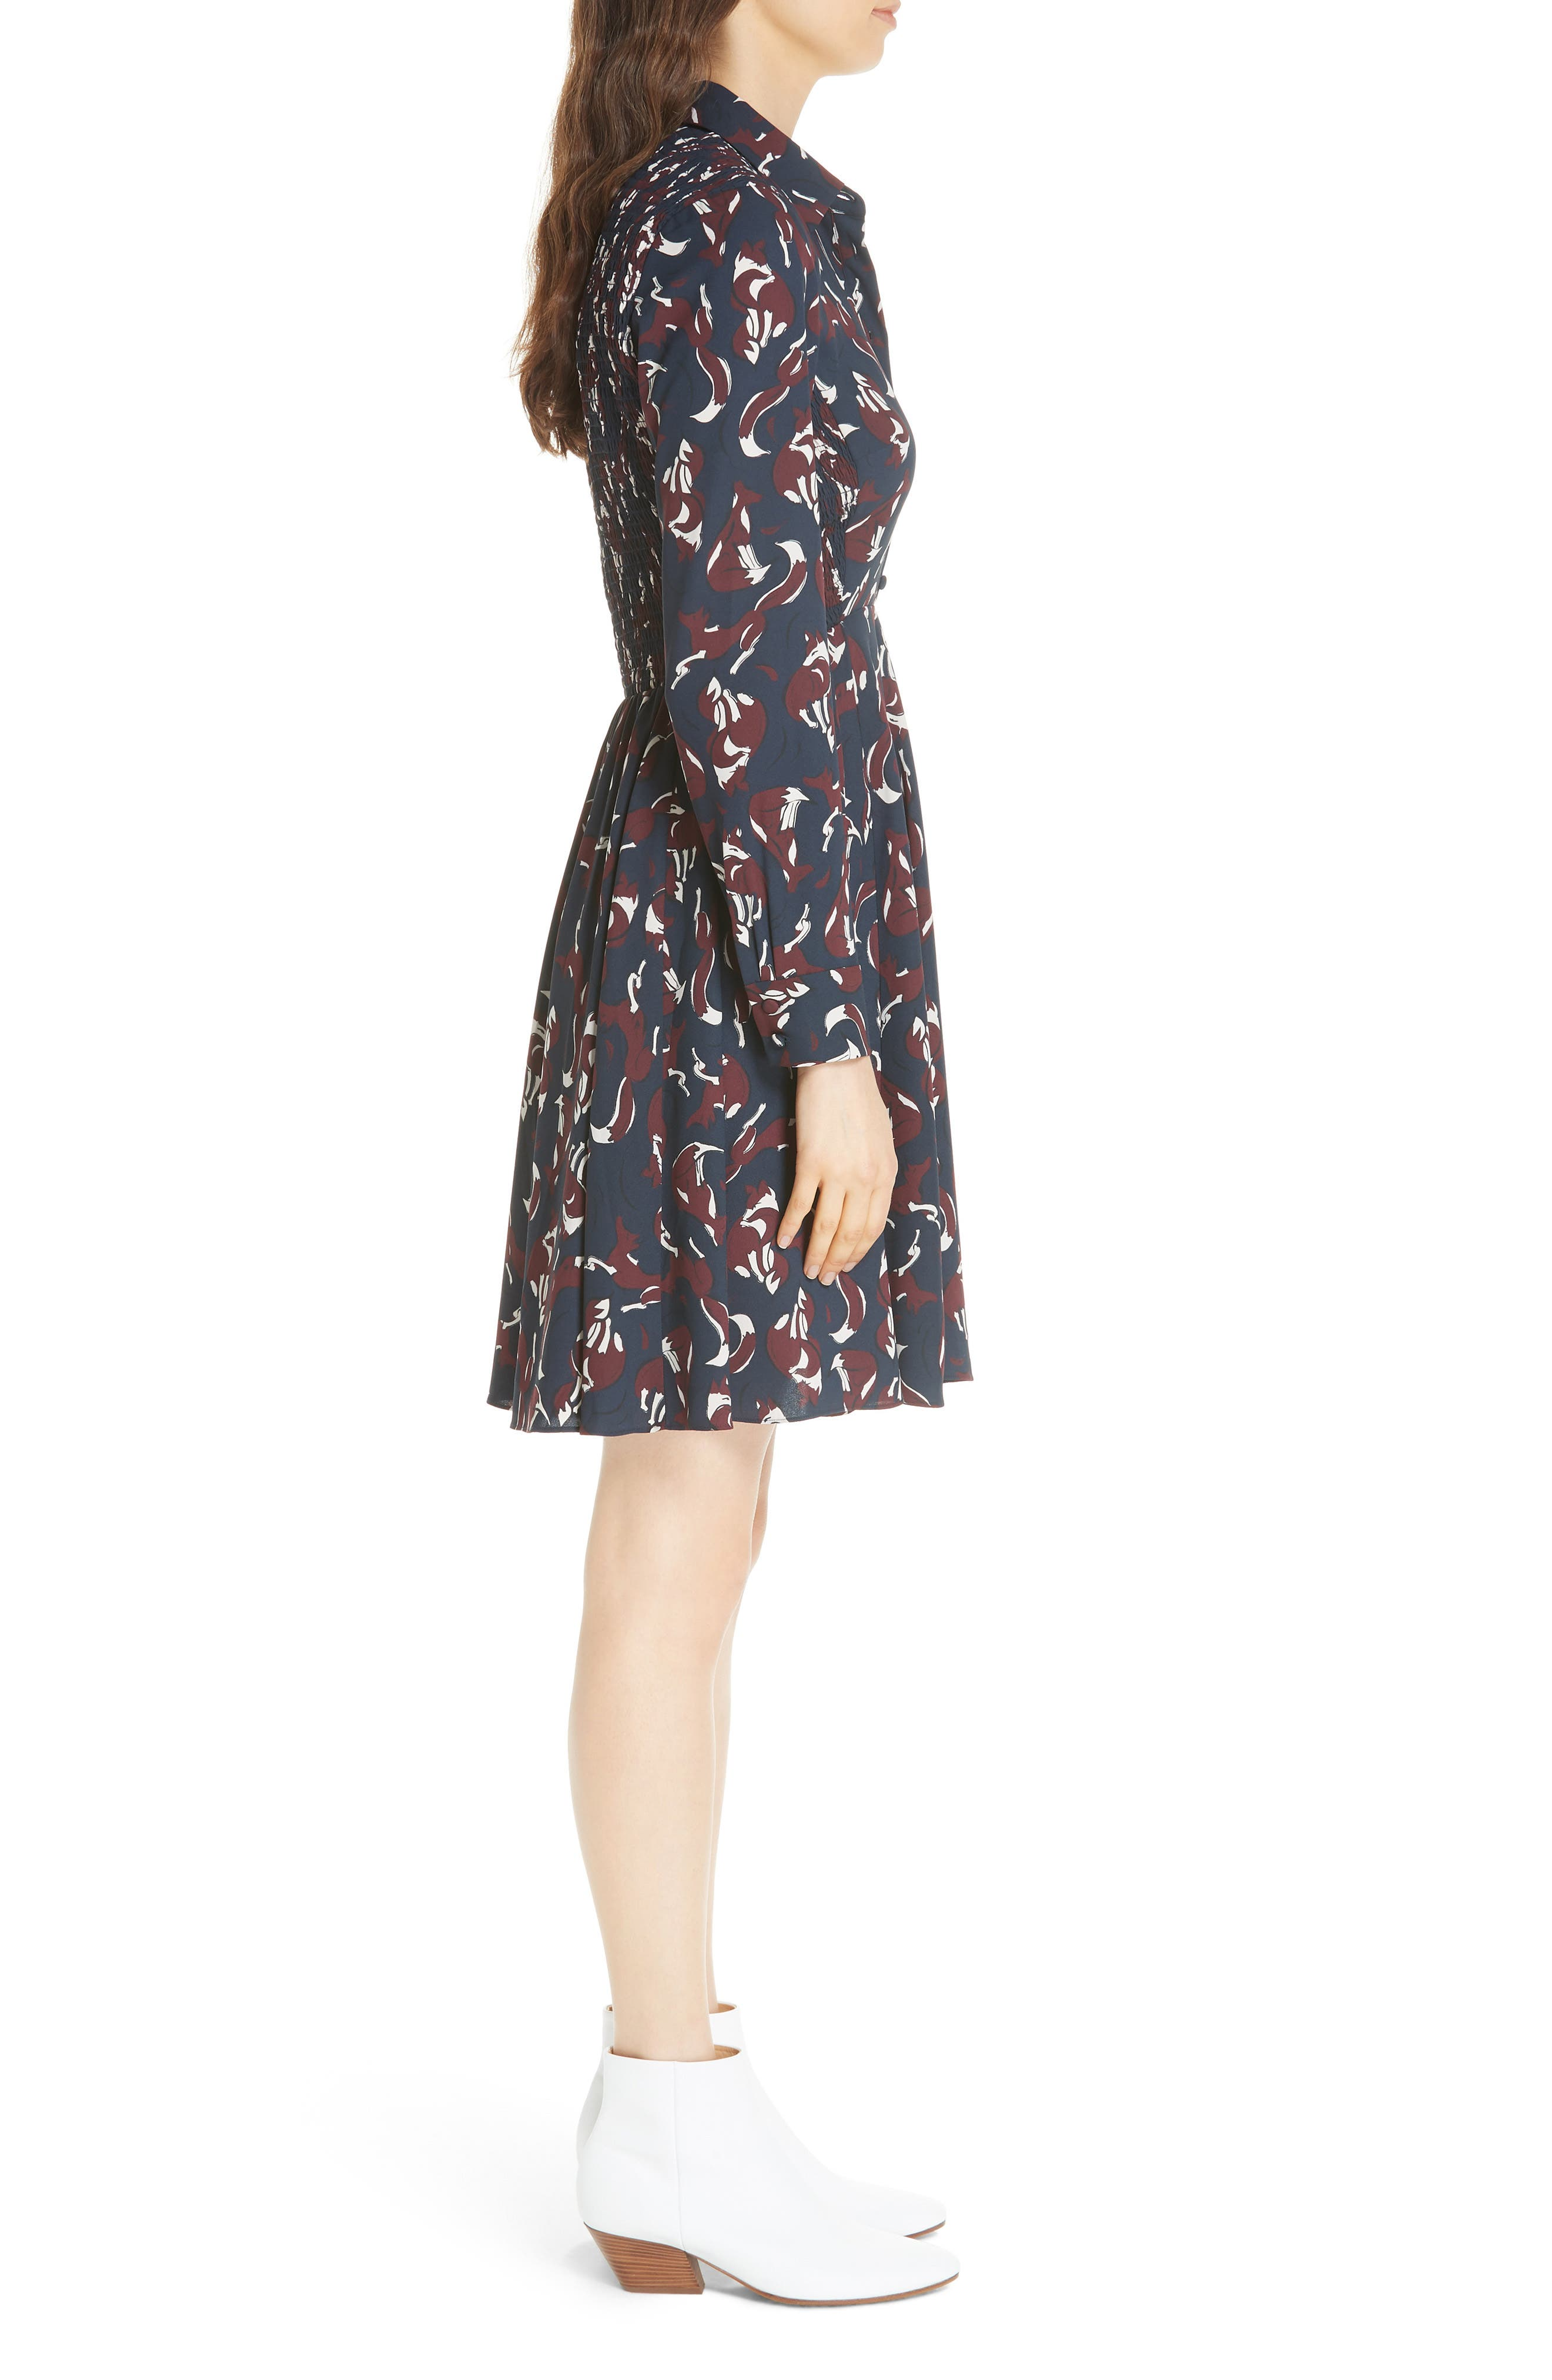 KATE SPADE NEW YORK,                             foxes smocked shirtdress,                             Alternate thumbnail 3, color,                             426